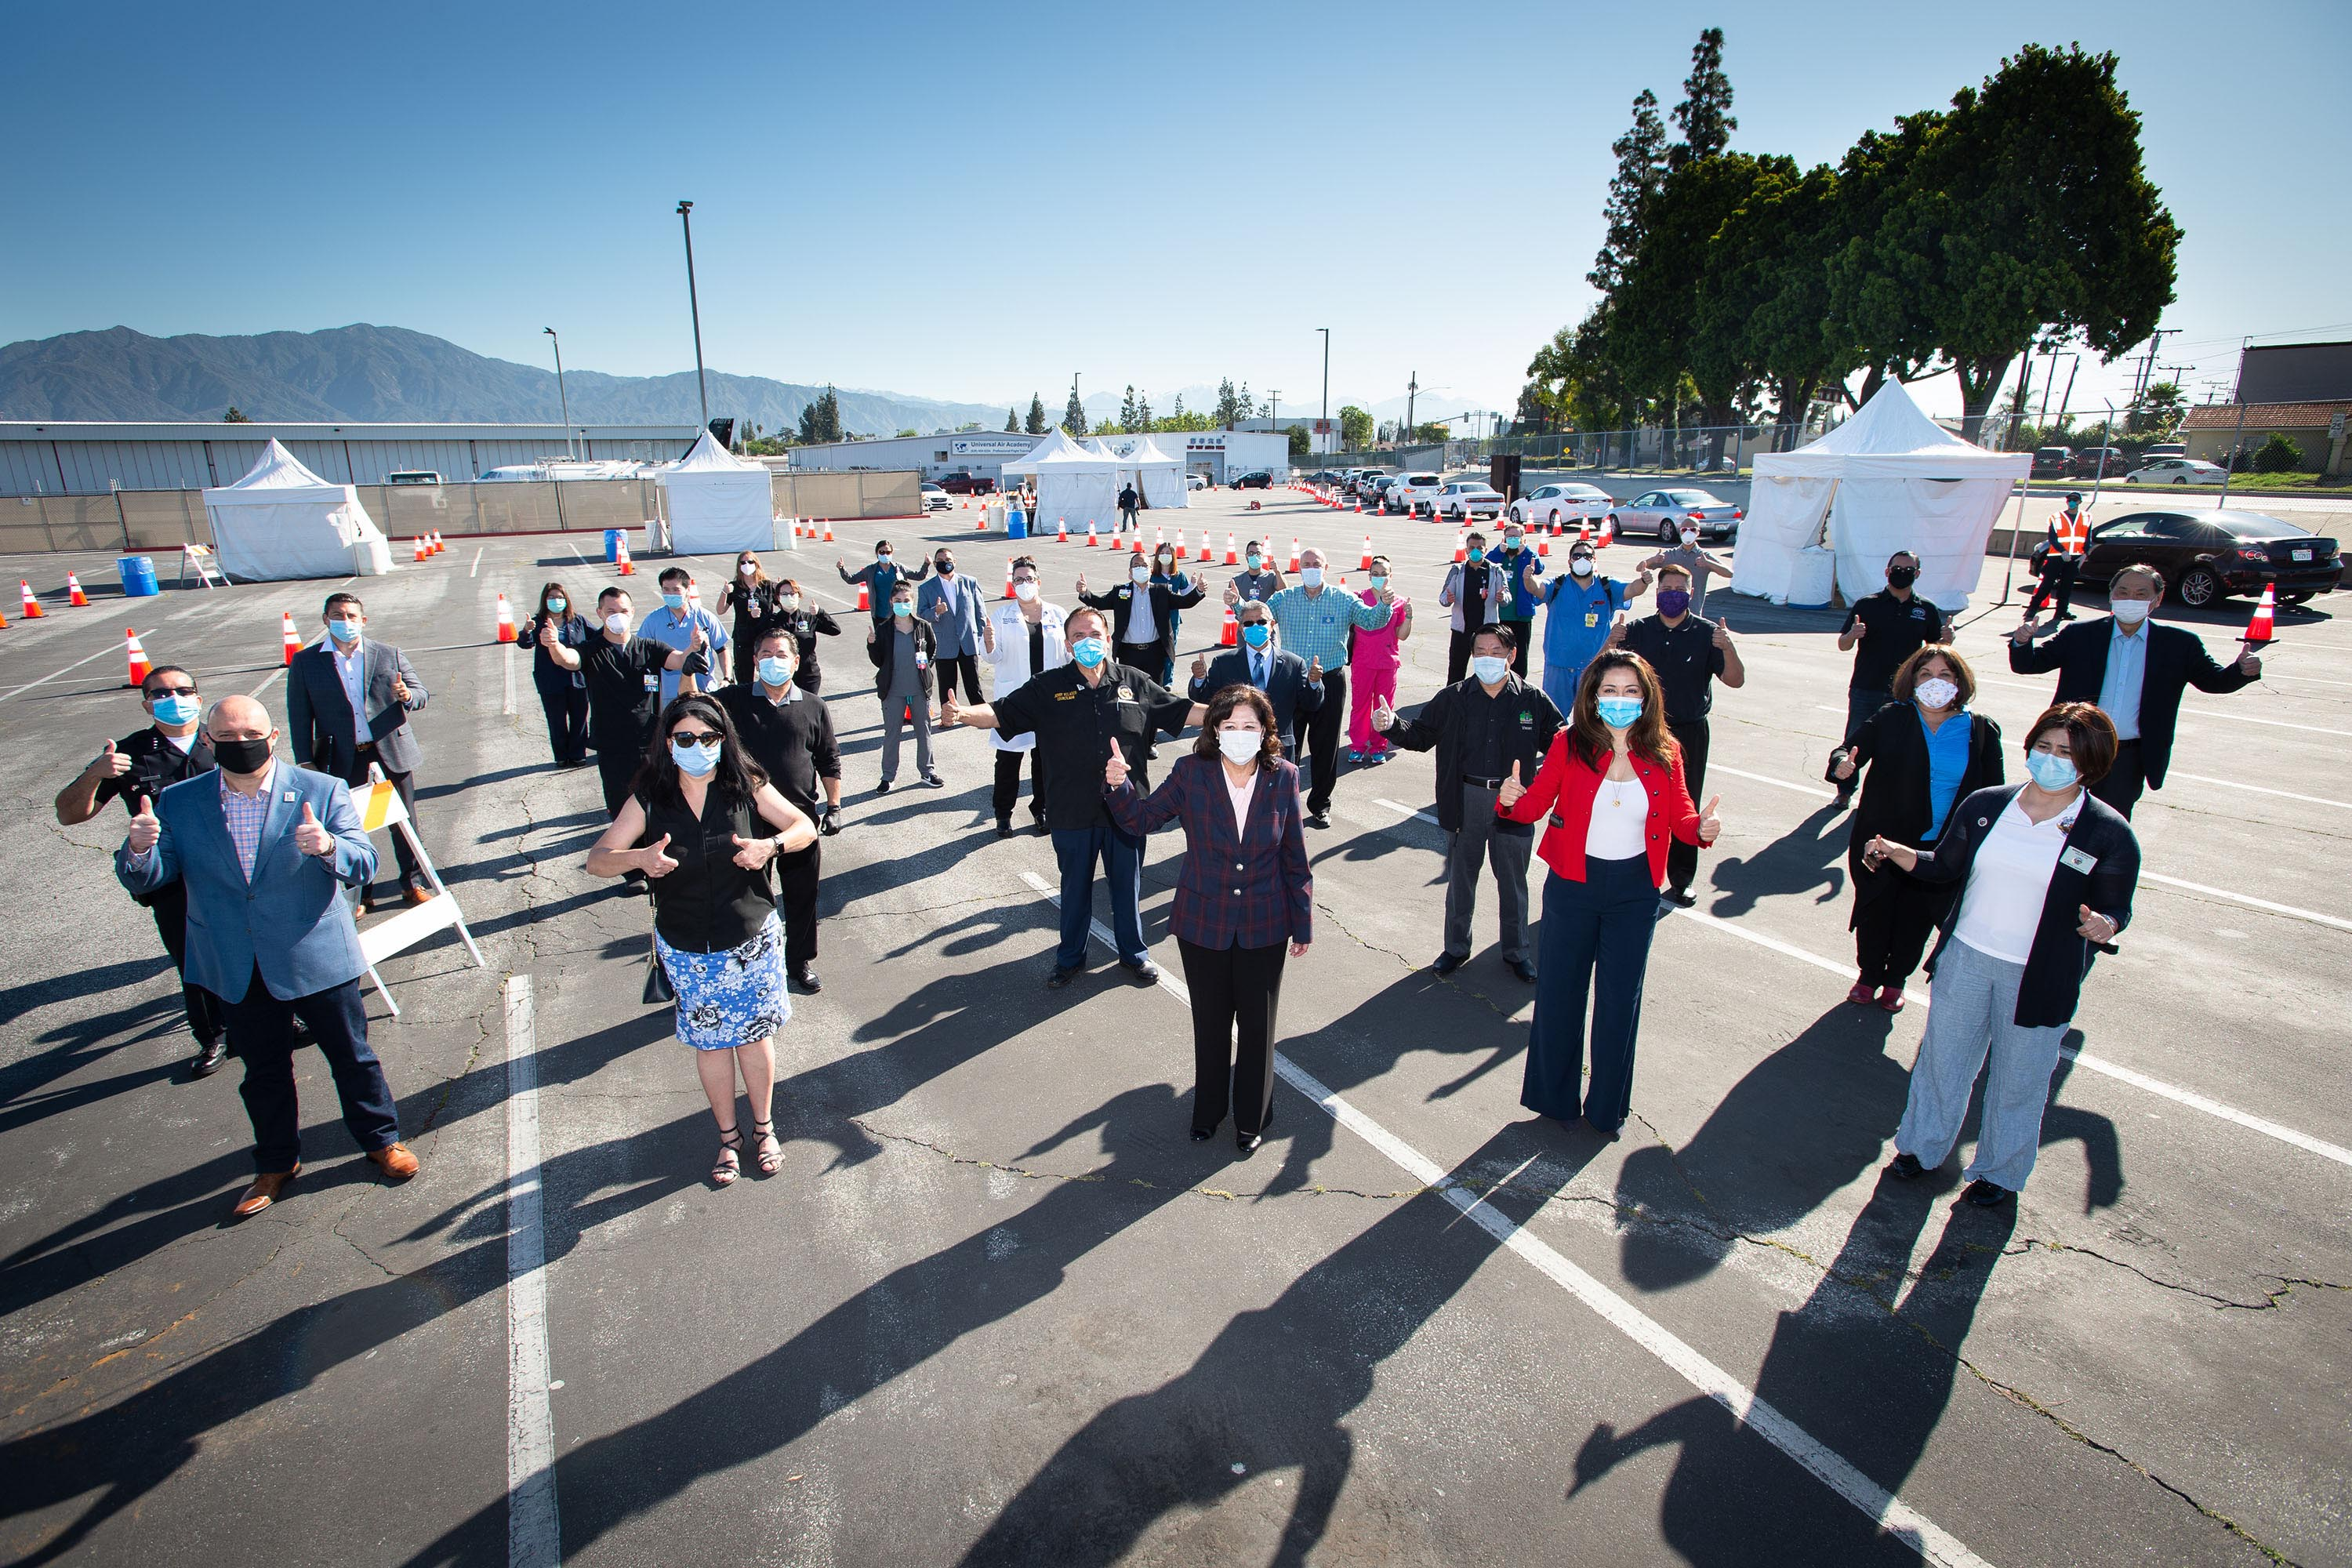 District 1 – Supervisor Hilda L. Solis<br> <b>April 15, 2020 - South El Monte COVID-19 test site opening. </b><br> <i>Photo by Bryan Chan / Board of Supervisors</i>